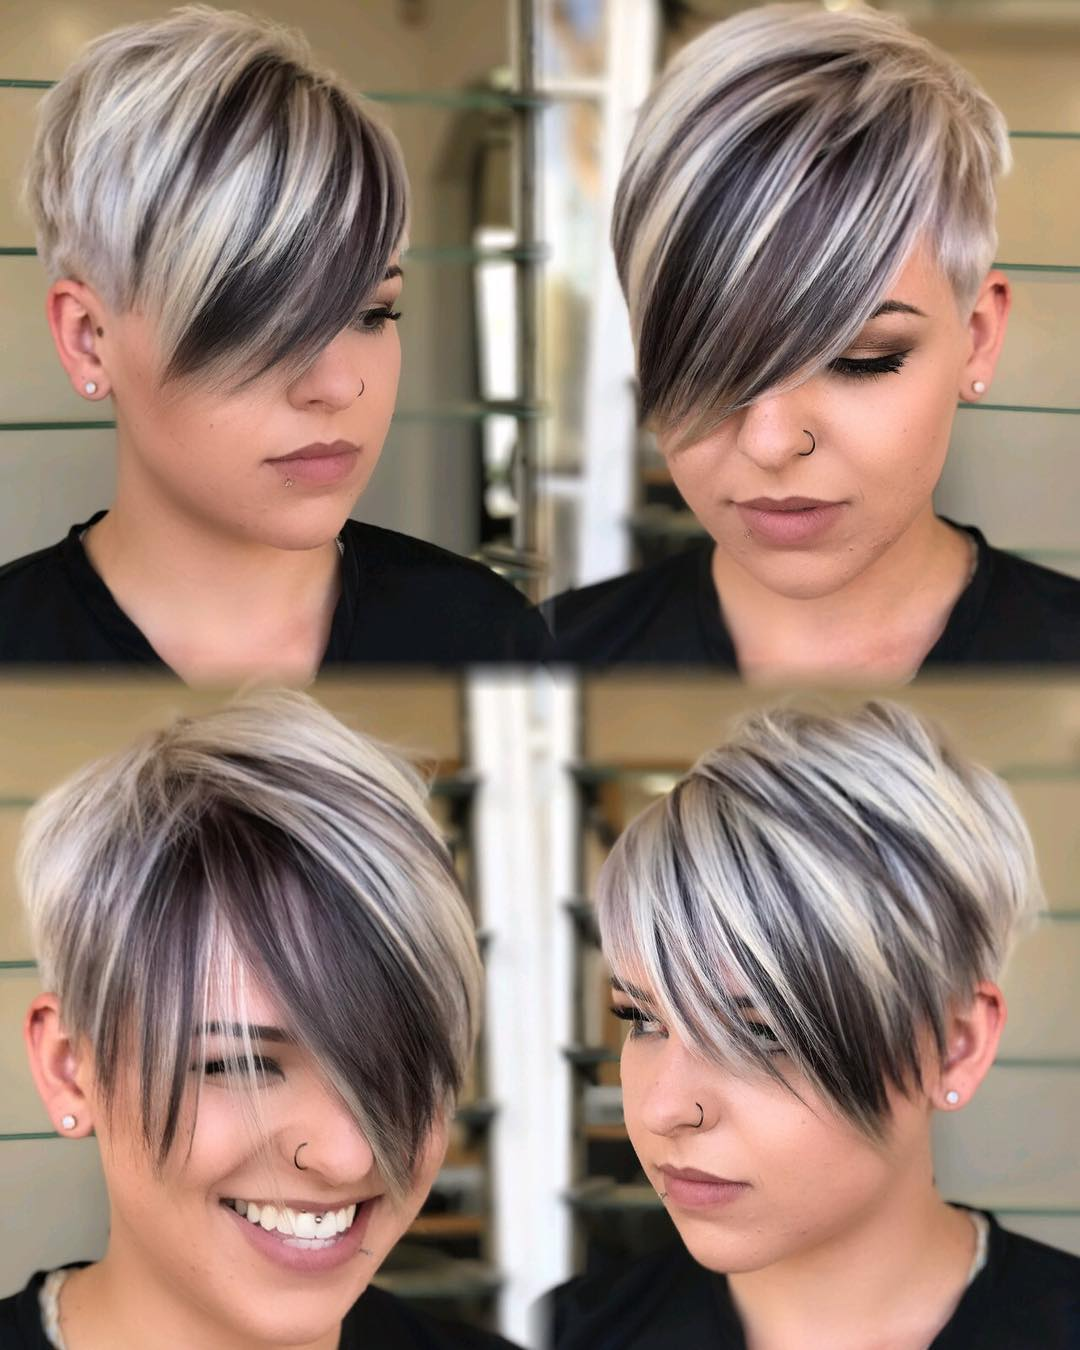 Top 50 Short Hairstyles for Round Faces (with Slimming